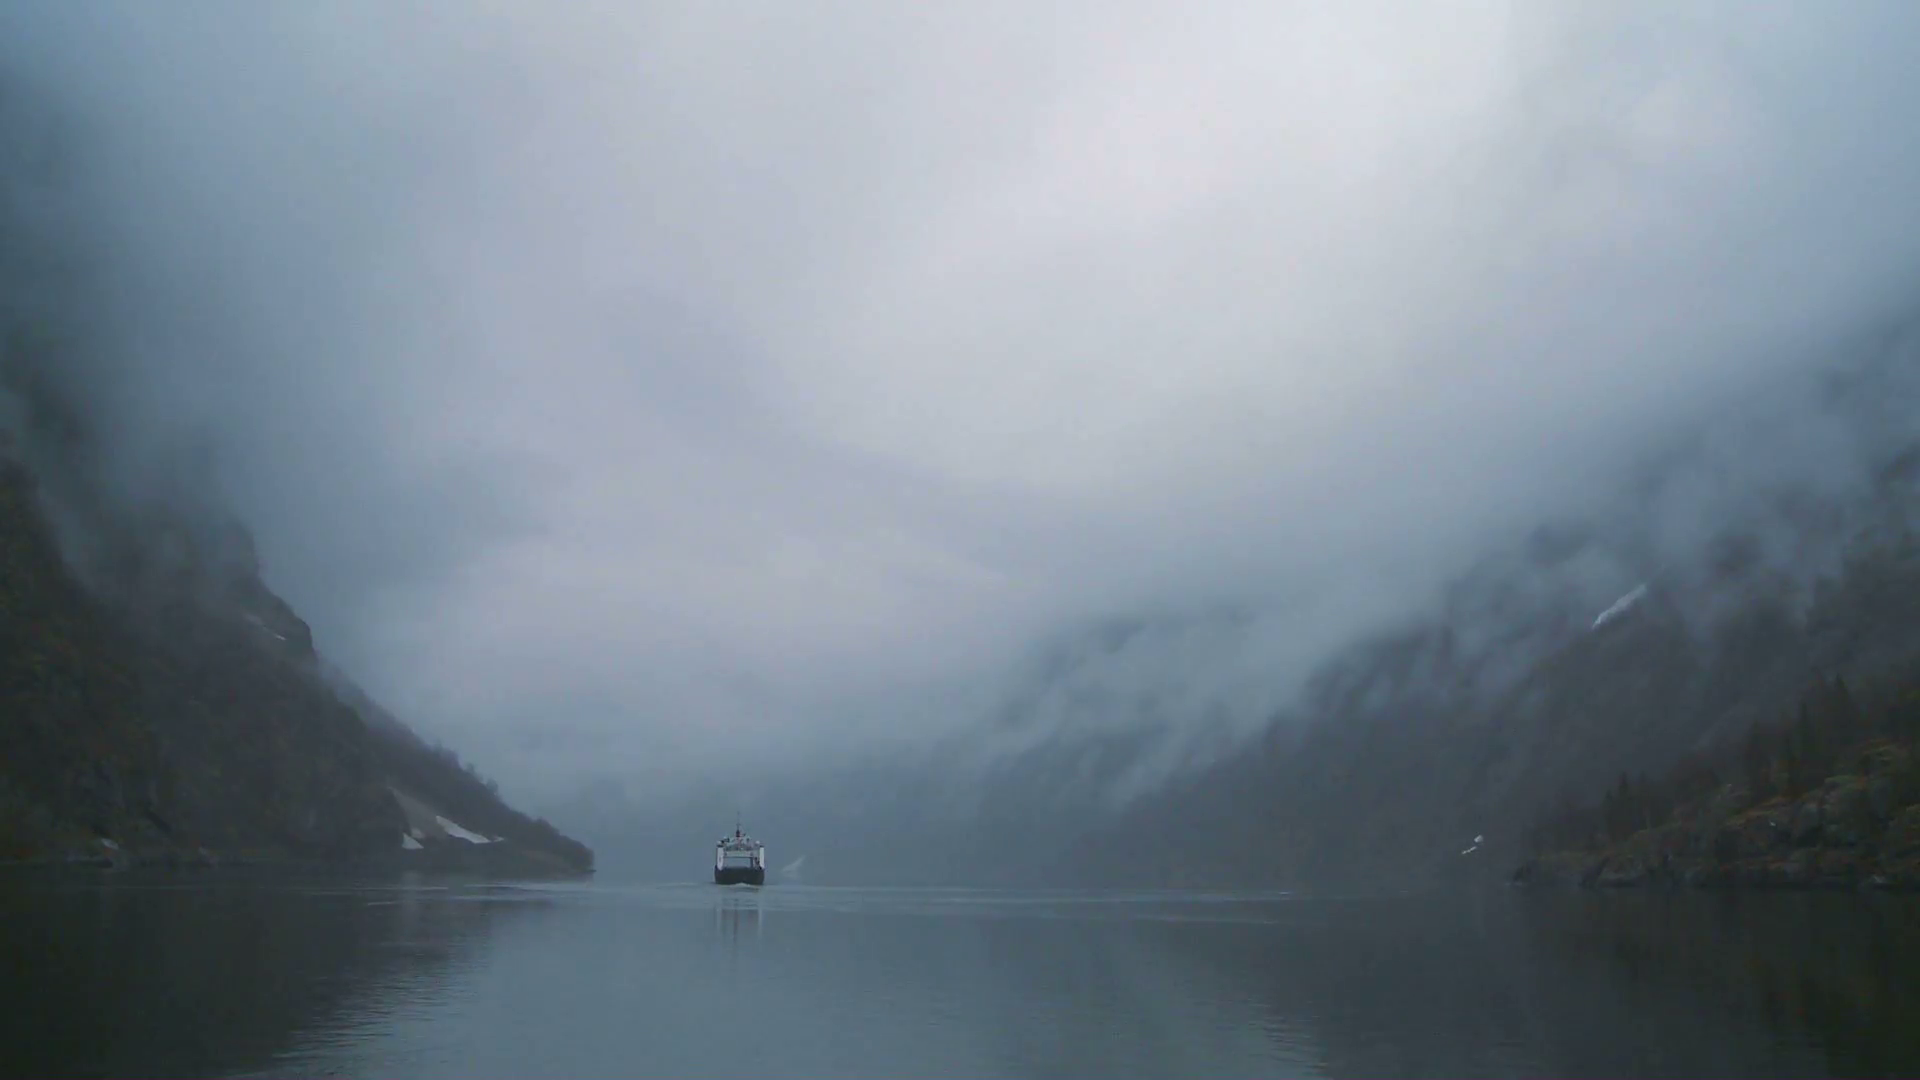 a-ferry-boat-sails-through-mysterious-fog-on-a-fjord-in-norway_bmgzd1-1h__F0000.png